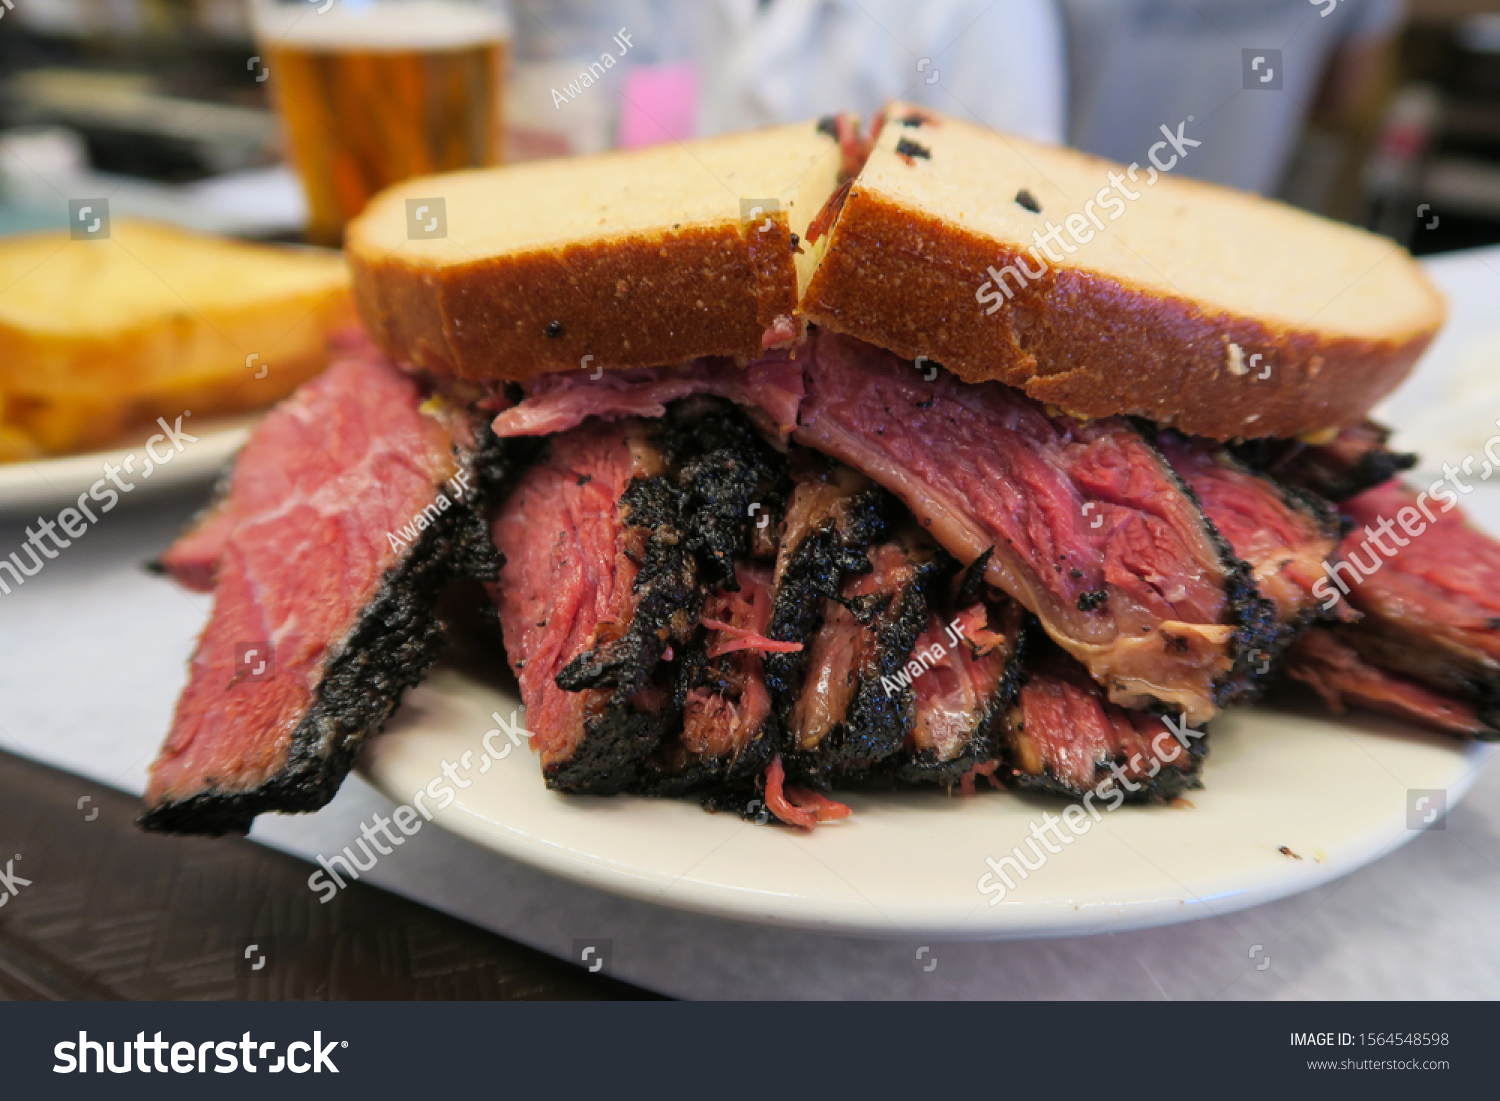 stock-photo-smoked-ham-sandwich-on-a-pla